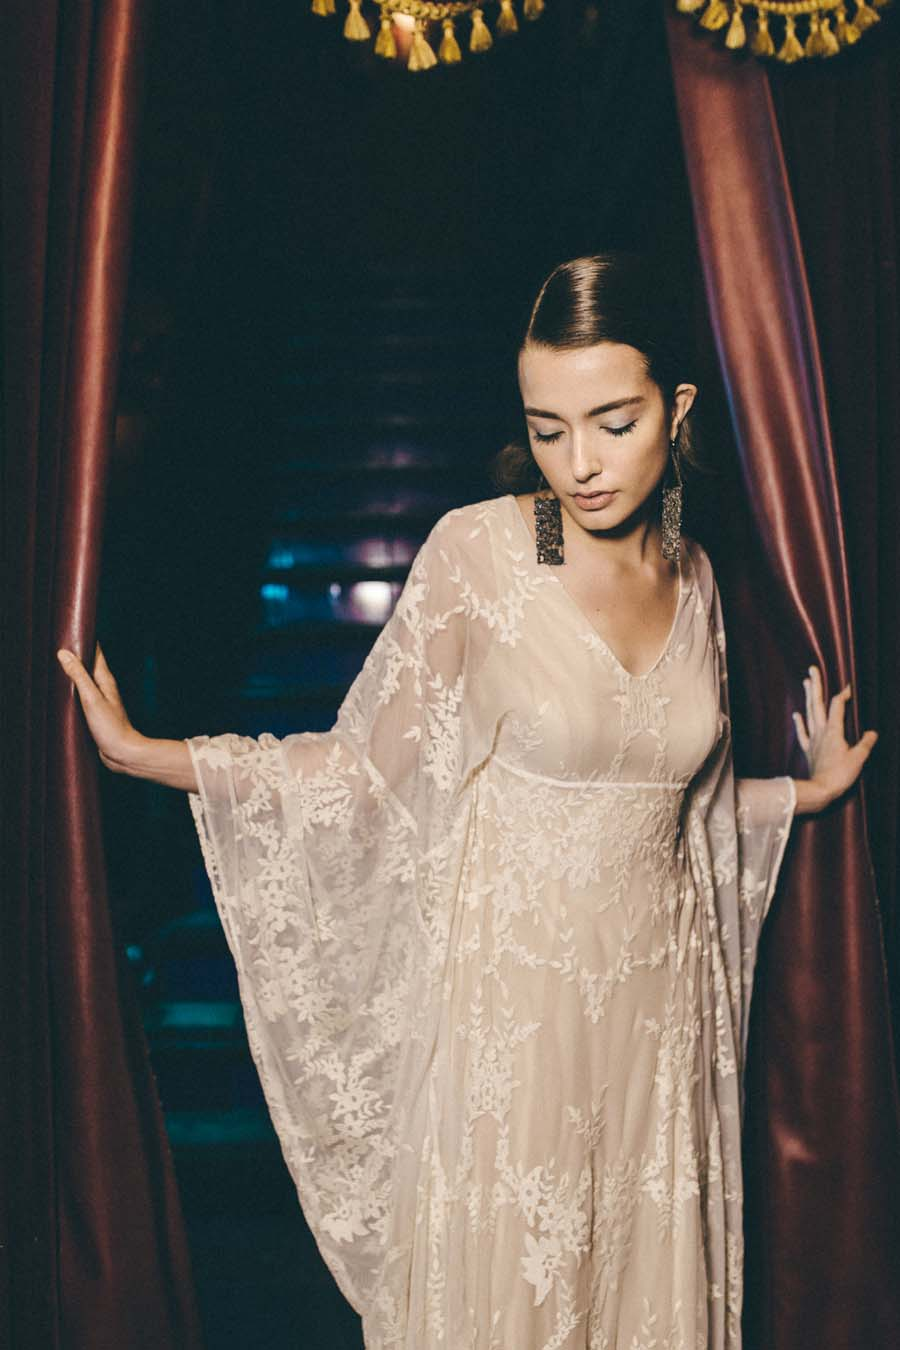 Glitter & Disco: Beautiful 70s Inspired Wedding Dresses by Otuday